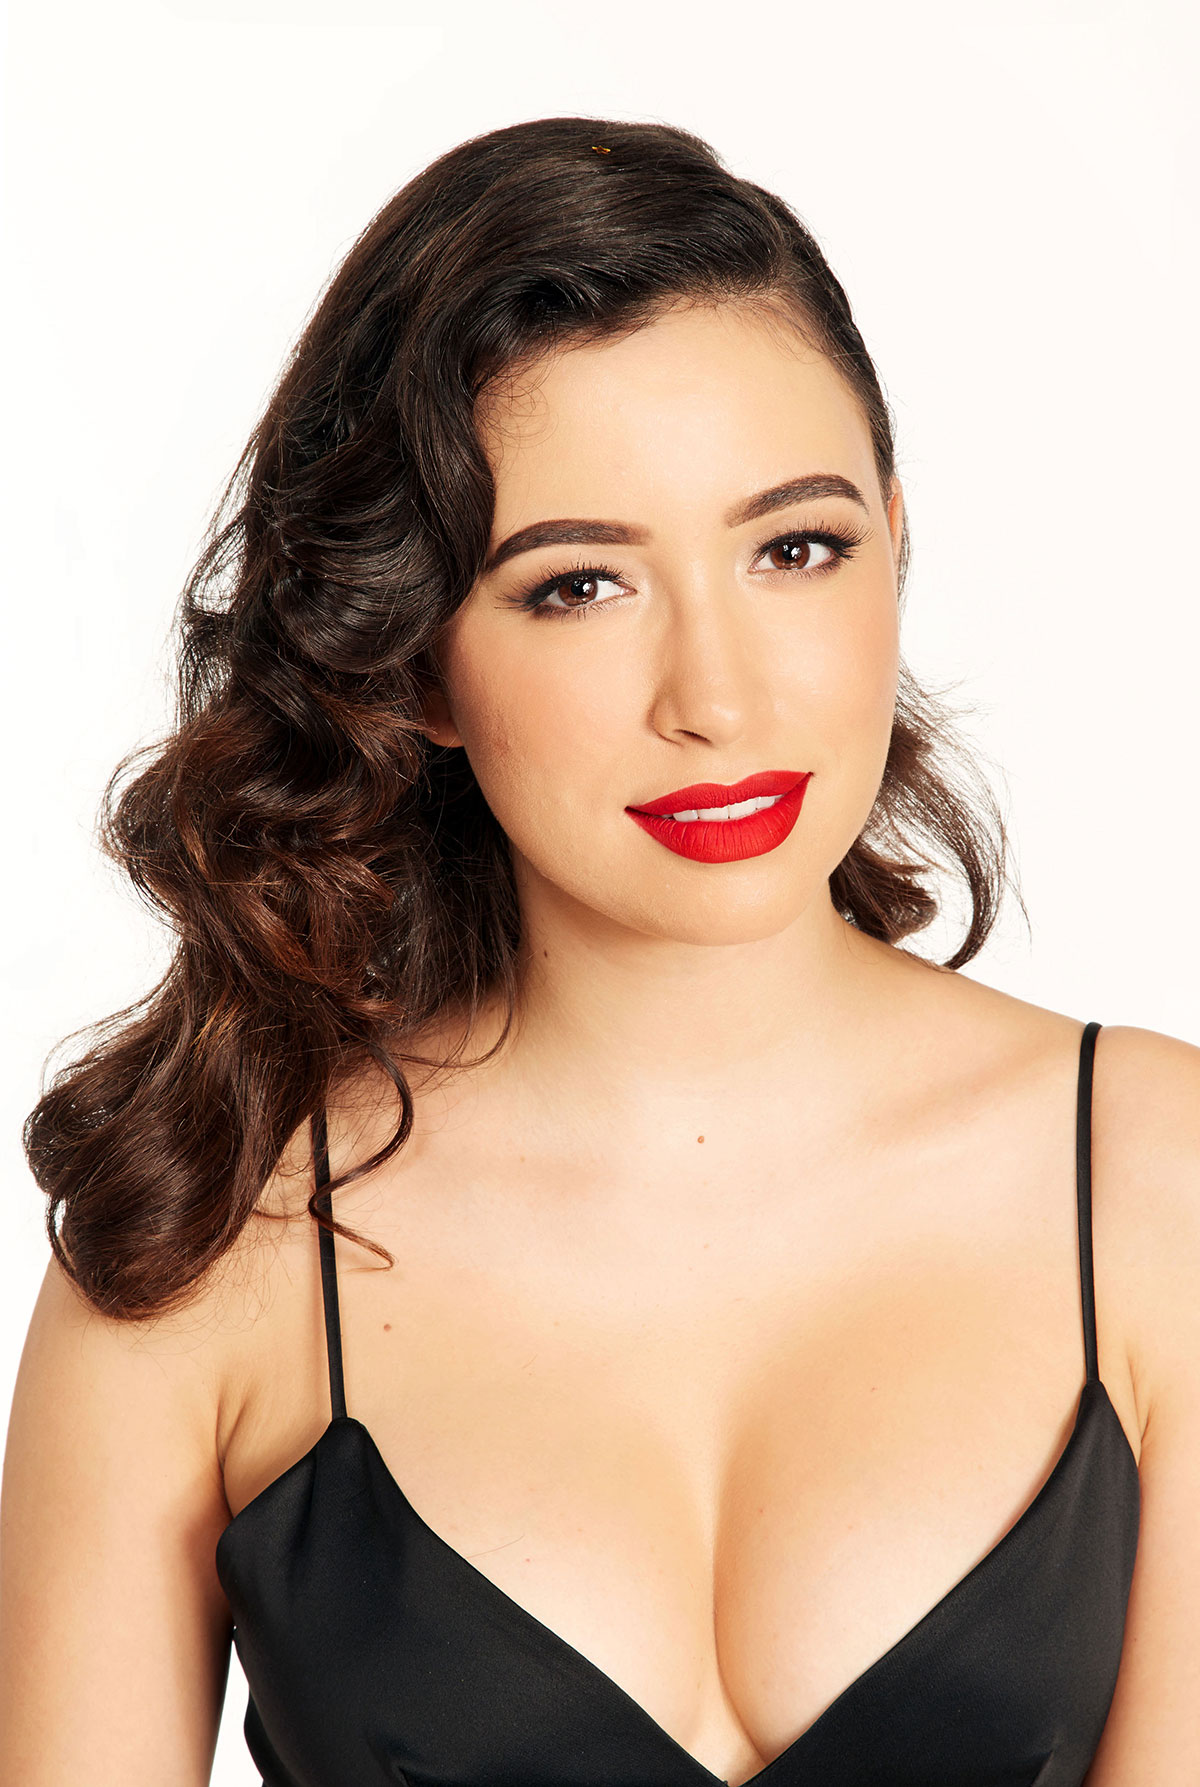 Young Christian Serratos nudes (97 foto and video), Pussy, Fappening, Boobs, swimsuit 2020